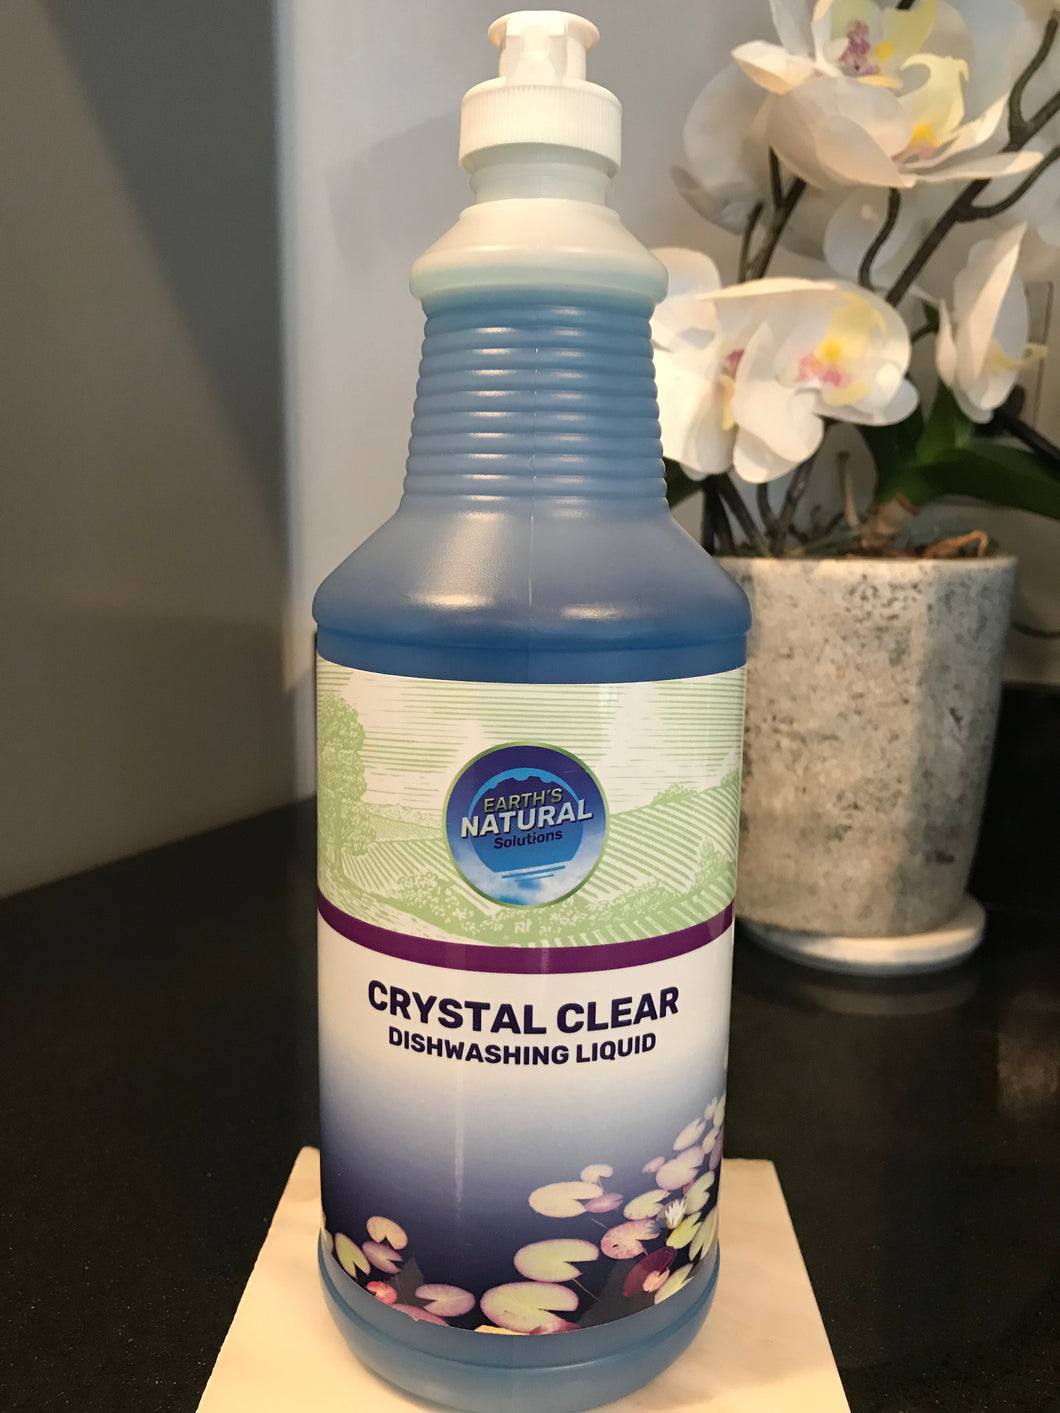 Crystal Clear Dishwashing Liquid